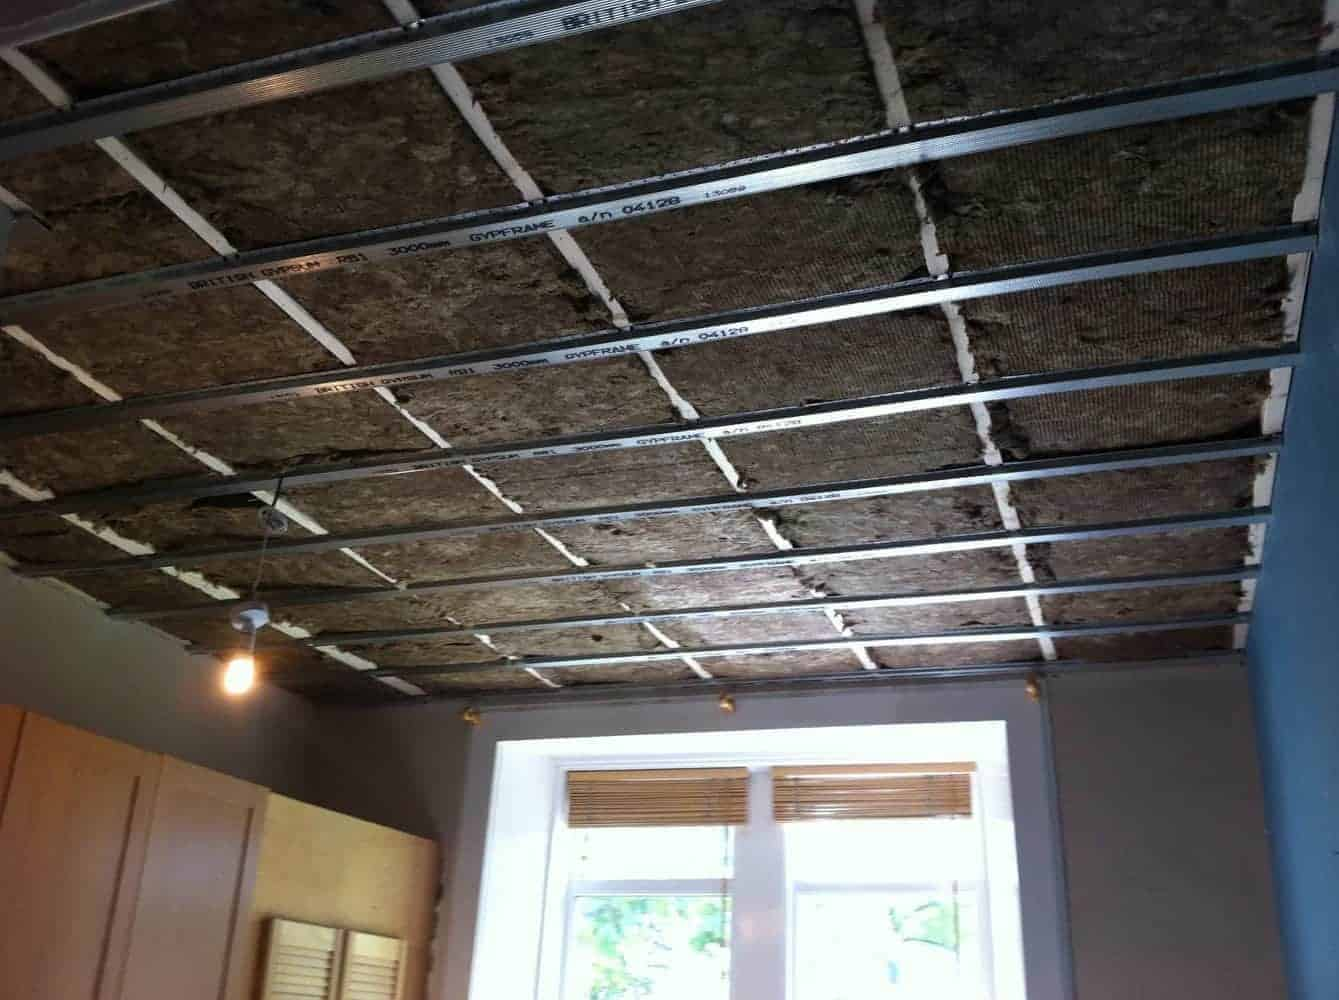 a ceiling in youtube an soundproofing room soundproof watch existing